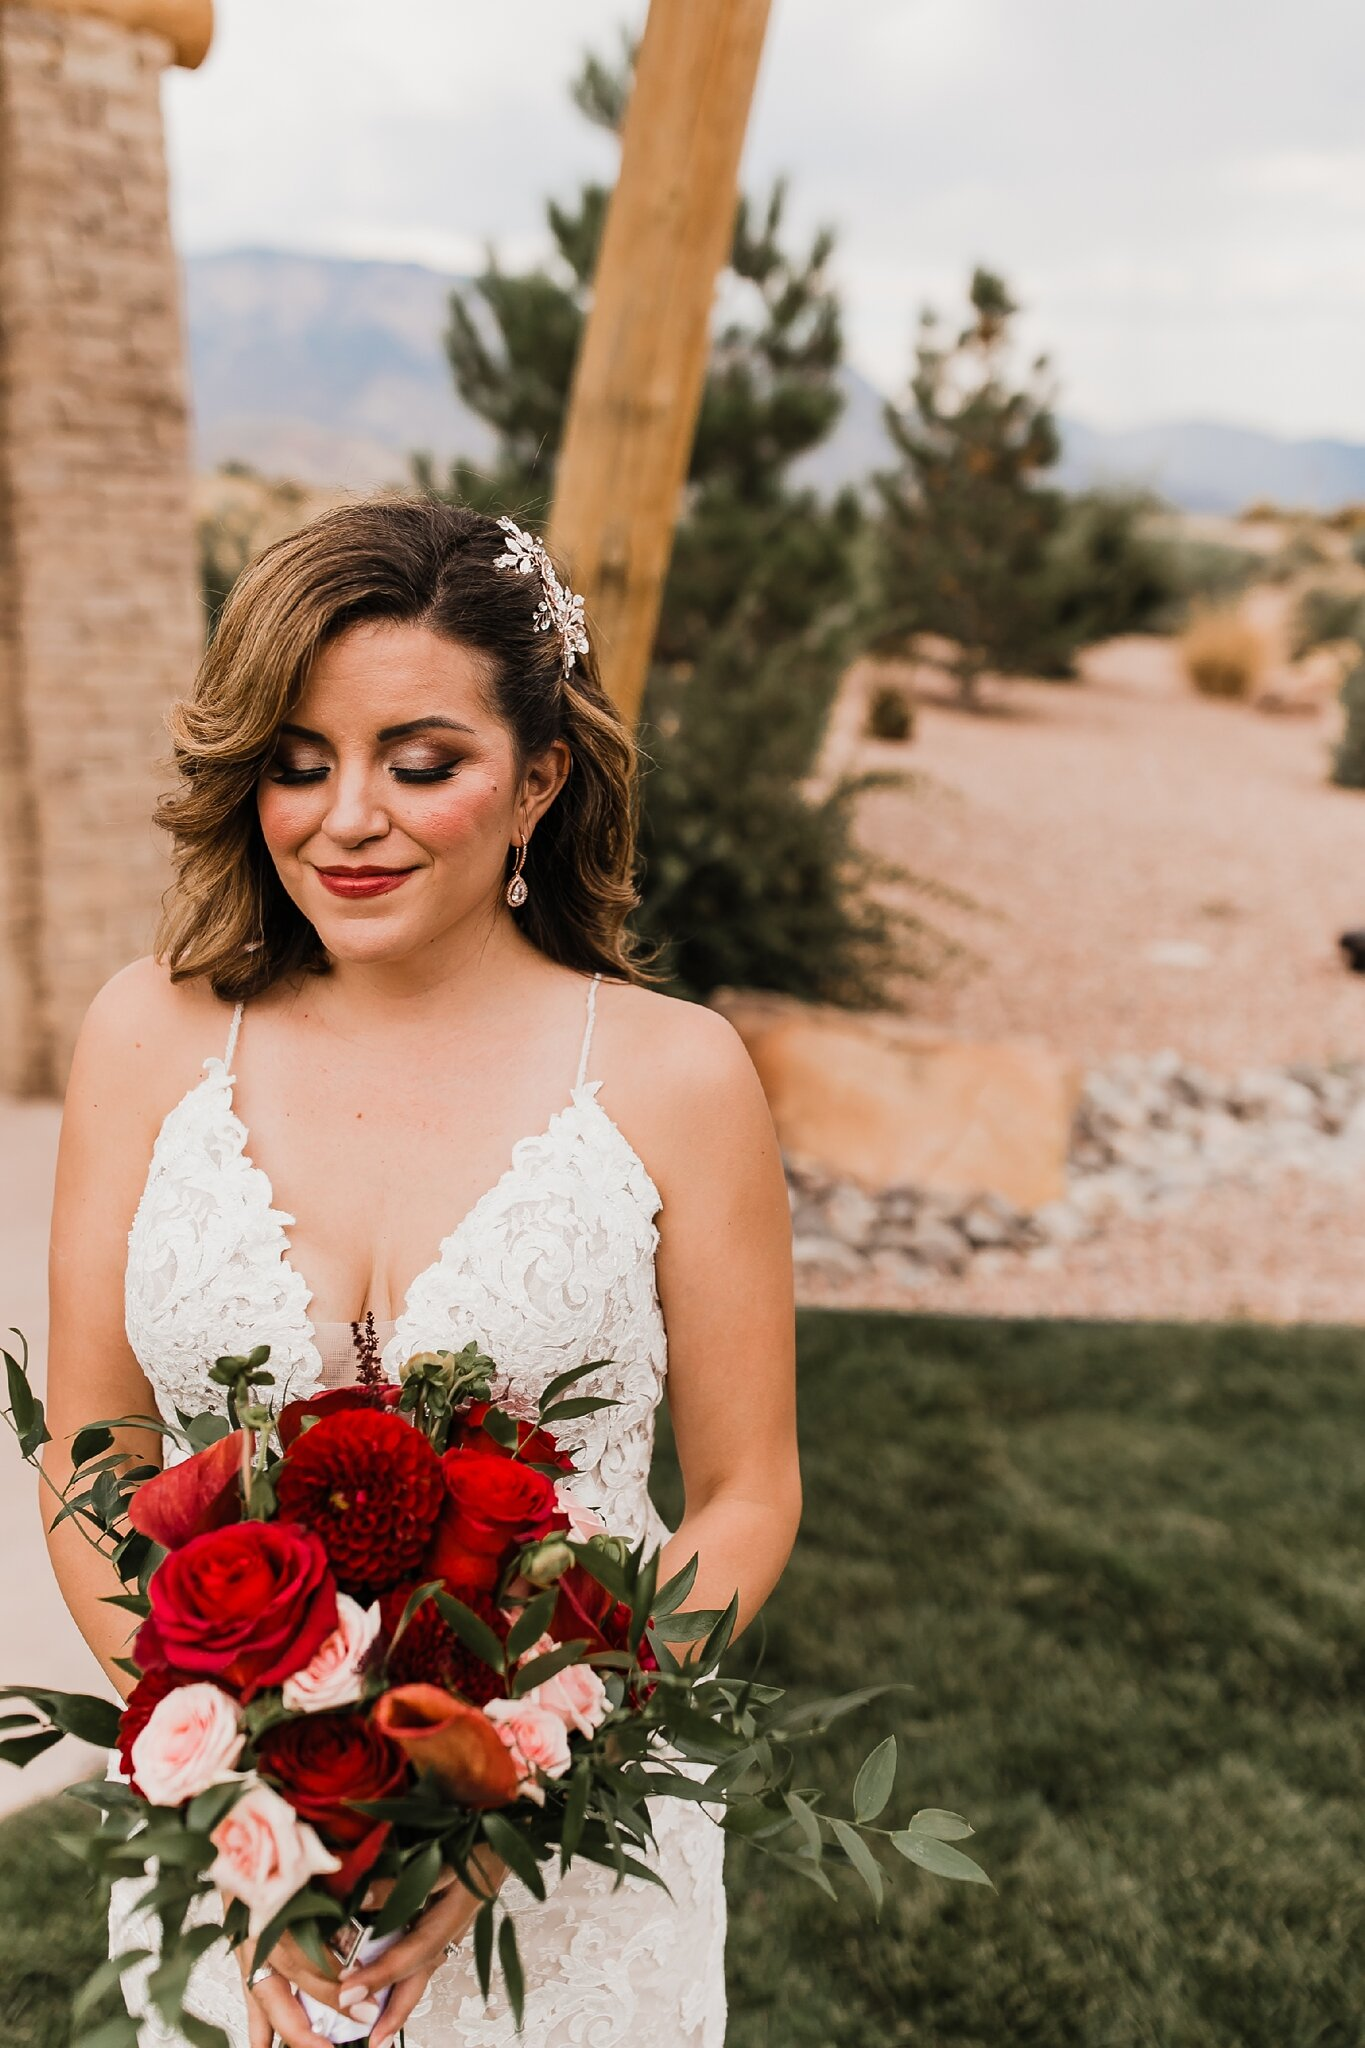 Alicia+lucia+photography+-+albuquerque+wedding+photographer+-+santa+fe+wedding+photography+-+new+mexico+wedding+photographer+-+new+mexico+wedding+-+albuquerque+wedding+-+sandia+wedding+-+sandia+event+center+wedding_0062.jpg